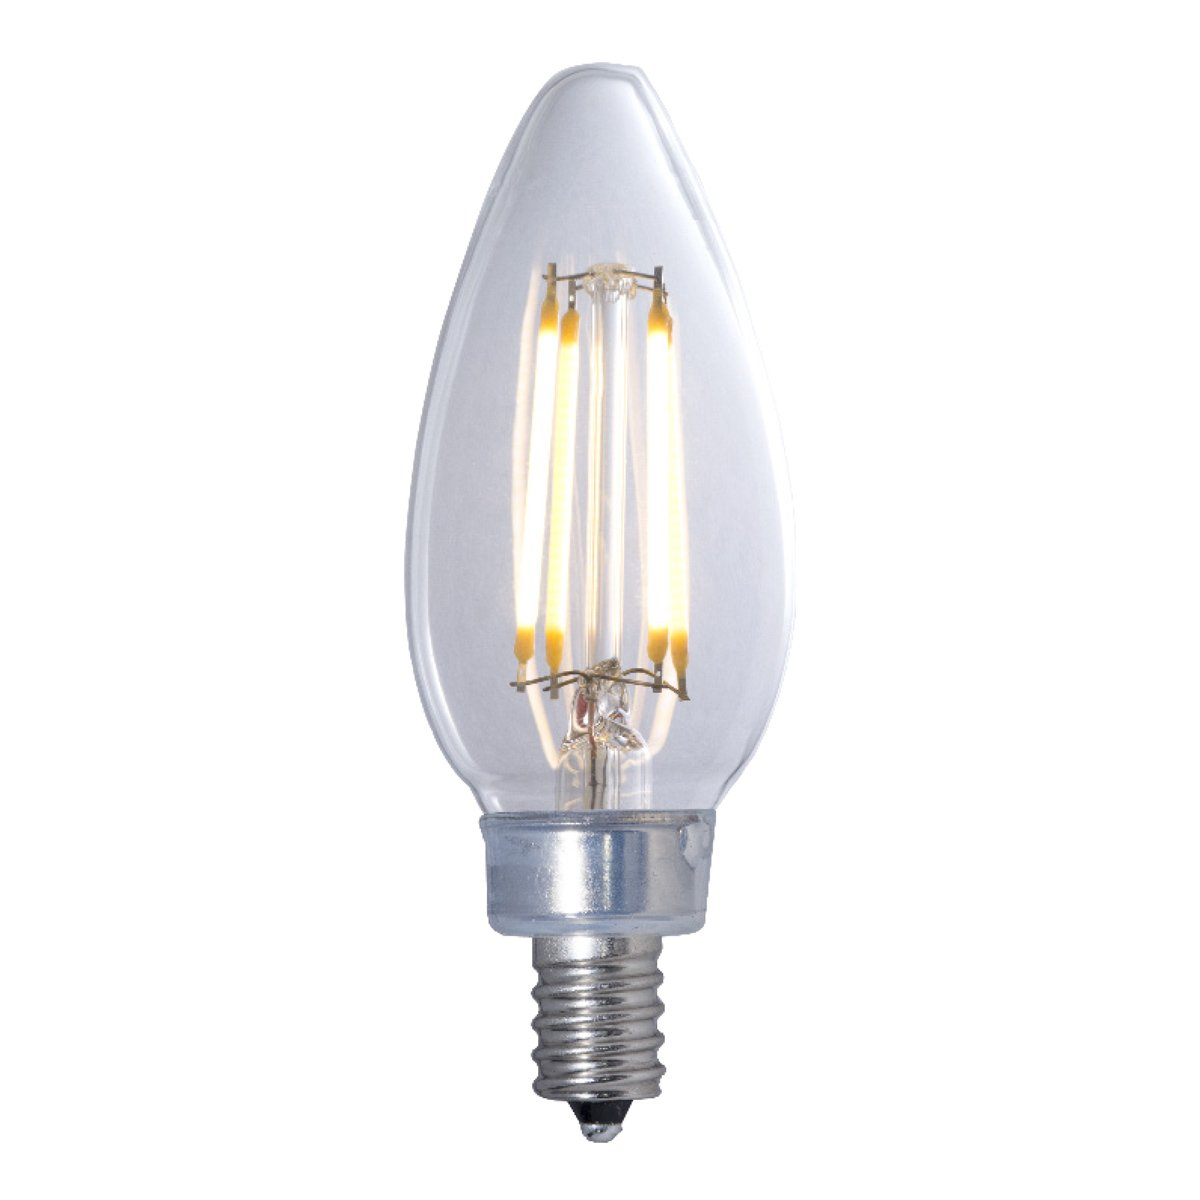 (PACK OF 20) 4.5W LED B11 3000K FILAMENT E12 FULLY COMPATIBLE DIMMING JA8